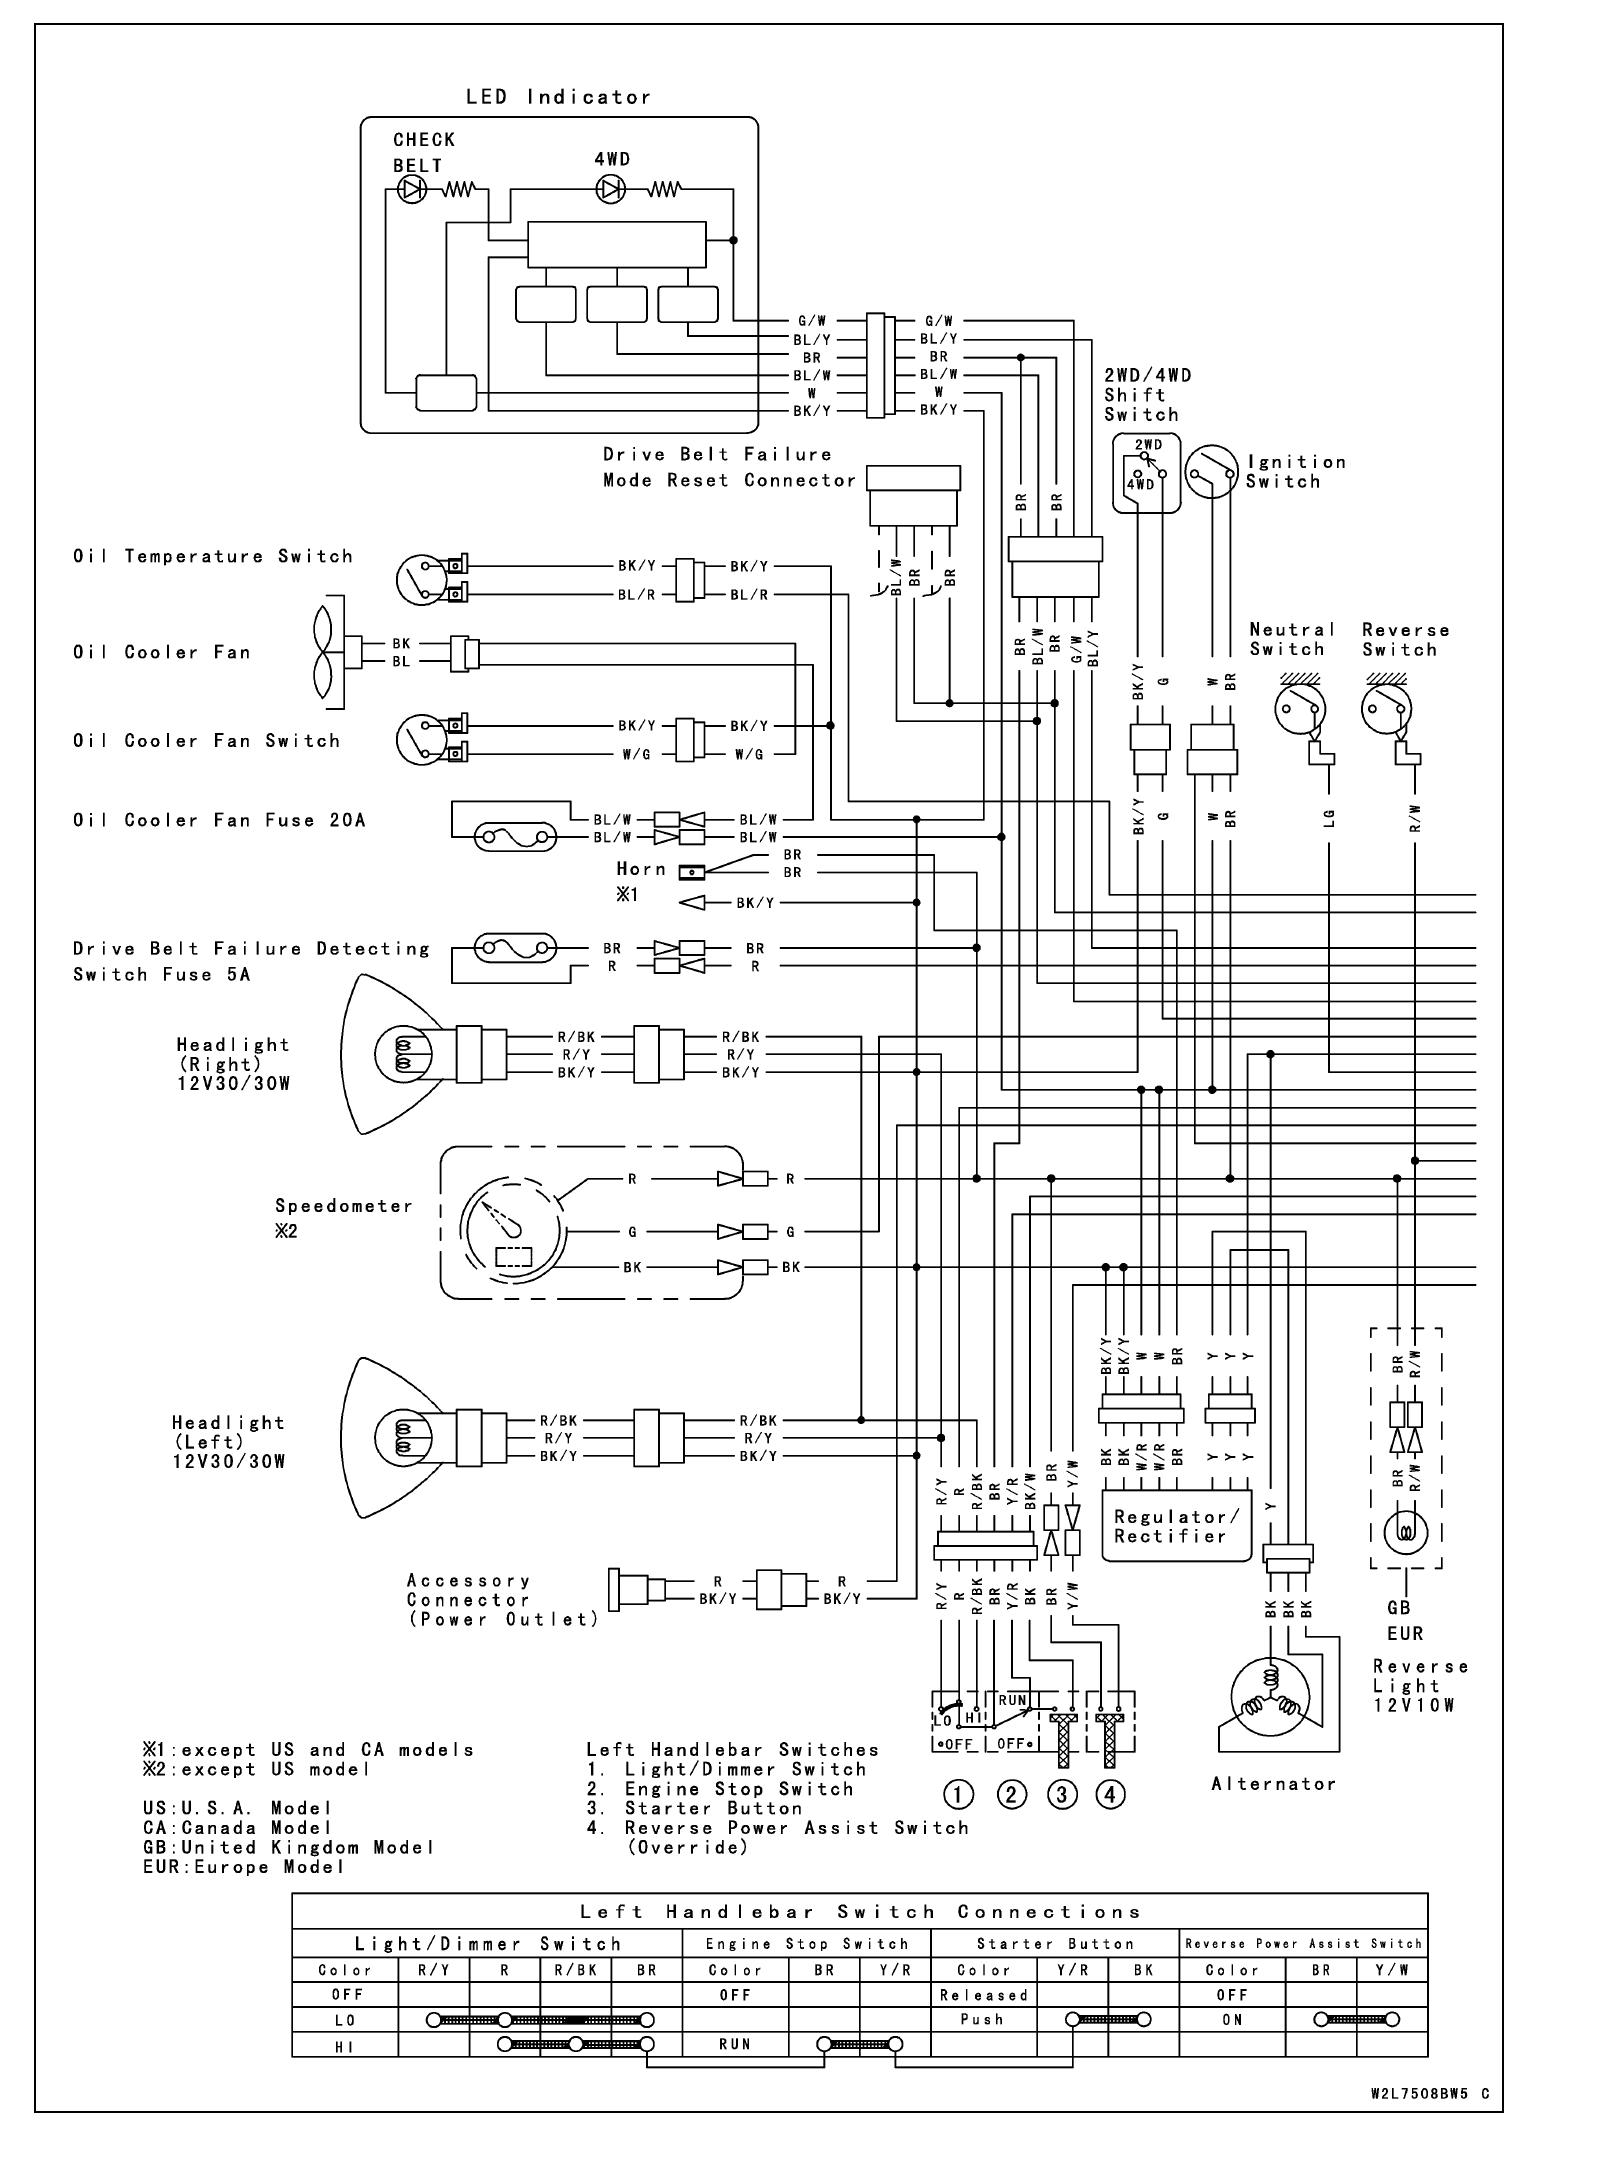 Wiring Diagram For Kawasaki Prairie 360 | Wiring Diagram on kawasaki 300 accessories, kawasaki 650 prairie wiring diagram, kawasaki 300 exhaust, kawasaki 300 fuel pump, kawasaki 185 wiring-diagram, kawasaki bayou wiring diagram, 94 kawasaki motorcycle wiring diagram, kawasaki 1996 wiring harness diagrams, kawasaki 220 wiring diagram, kawasaki cdi wiring diagram, kawasaki bayou 220 wiring, kawasaki 360 wiring diagram, kawasaki 300 headlights, kawasaki brute force wiring diagrams, kawasaki 300 forum, kawasaki bayou battery wiring, kawasaki mule wiring-diagram, kawasaki x2 wiring diagram, kawasaki 400 wiring diagram, kawasaki 300 power,